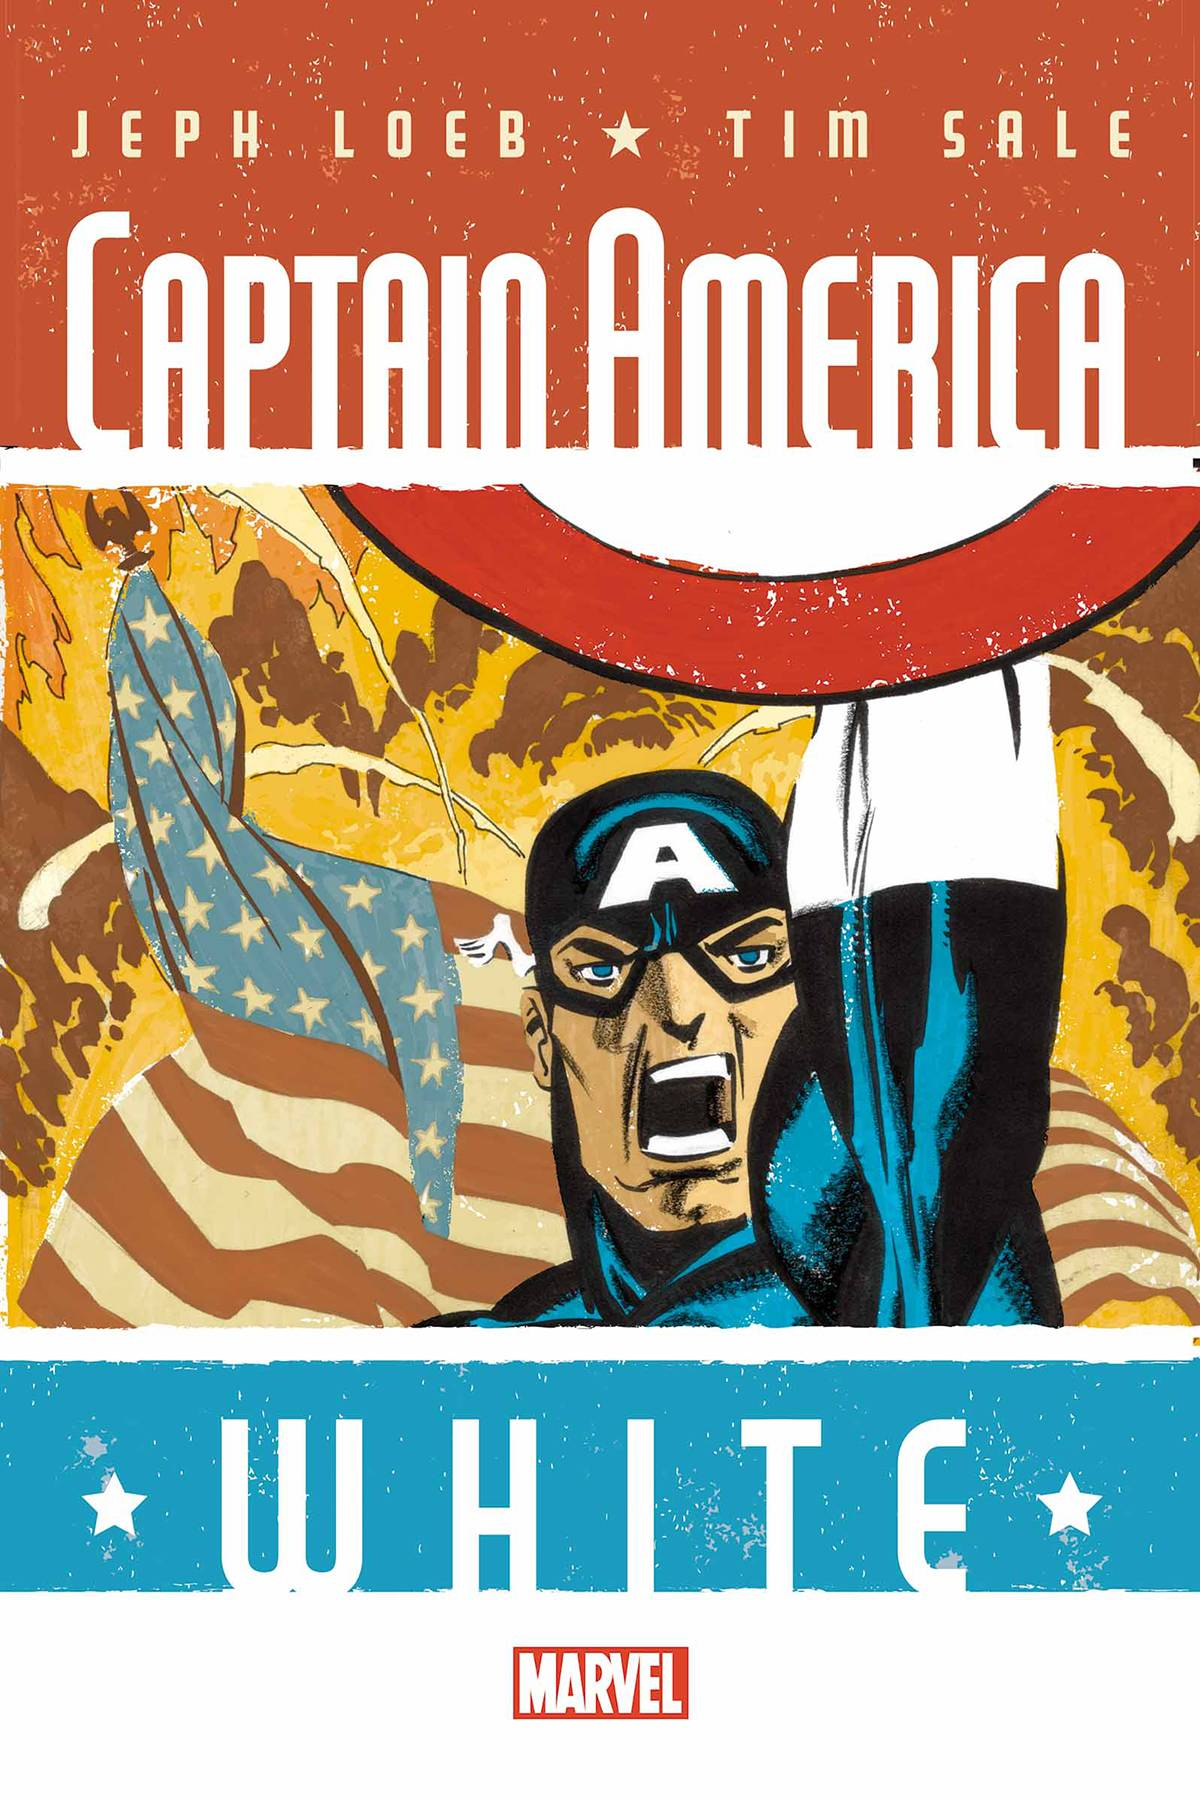 New comics coming in July 2015